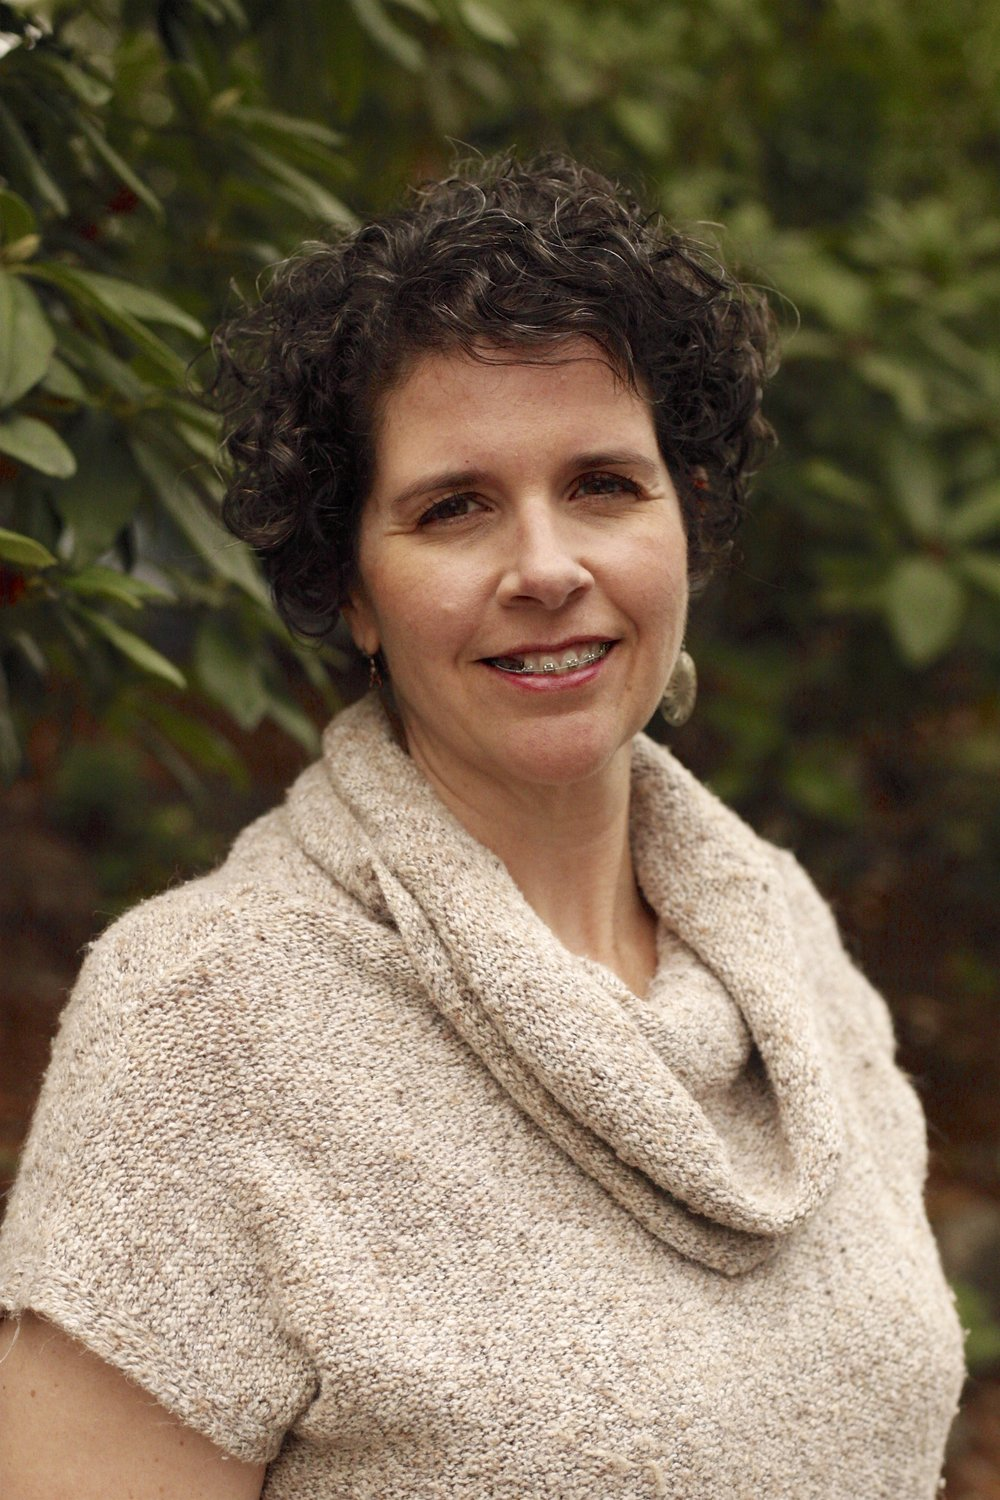 jenny donovan, ma, lmhc, therapist ∙ Adolescents & Adults (Ages 13+) ∙ Anxiety ∙ Grief & Loss ∙ Mood Disorders ∙ LGBTQ Issues ∙Trauma/ PTSD ∙ Developmental Trauma ∙Acute & Chronic Stress ∙Relationships & Interpersonal Concerns ∙ Attachment Issues ∙ Self Esteem ∙ Mild to Moderate Substance Abuse